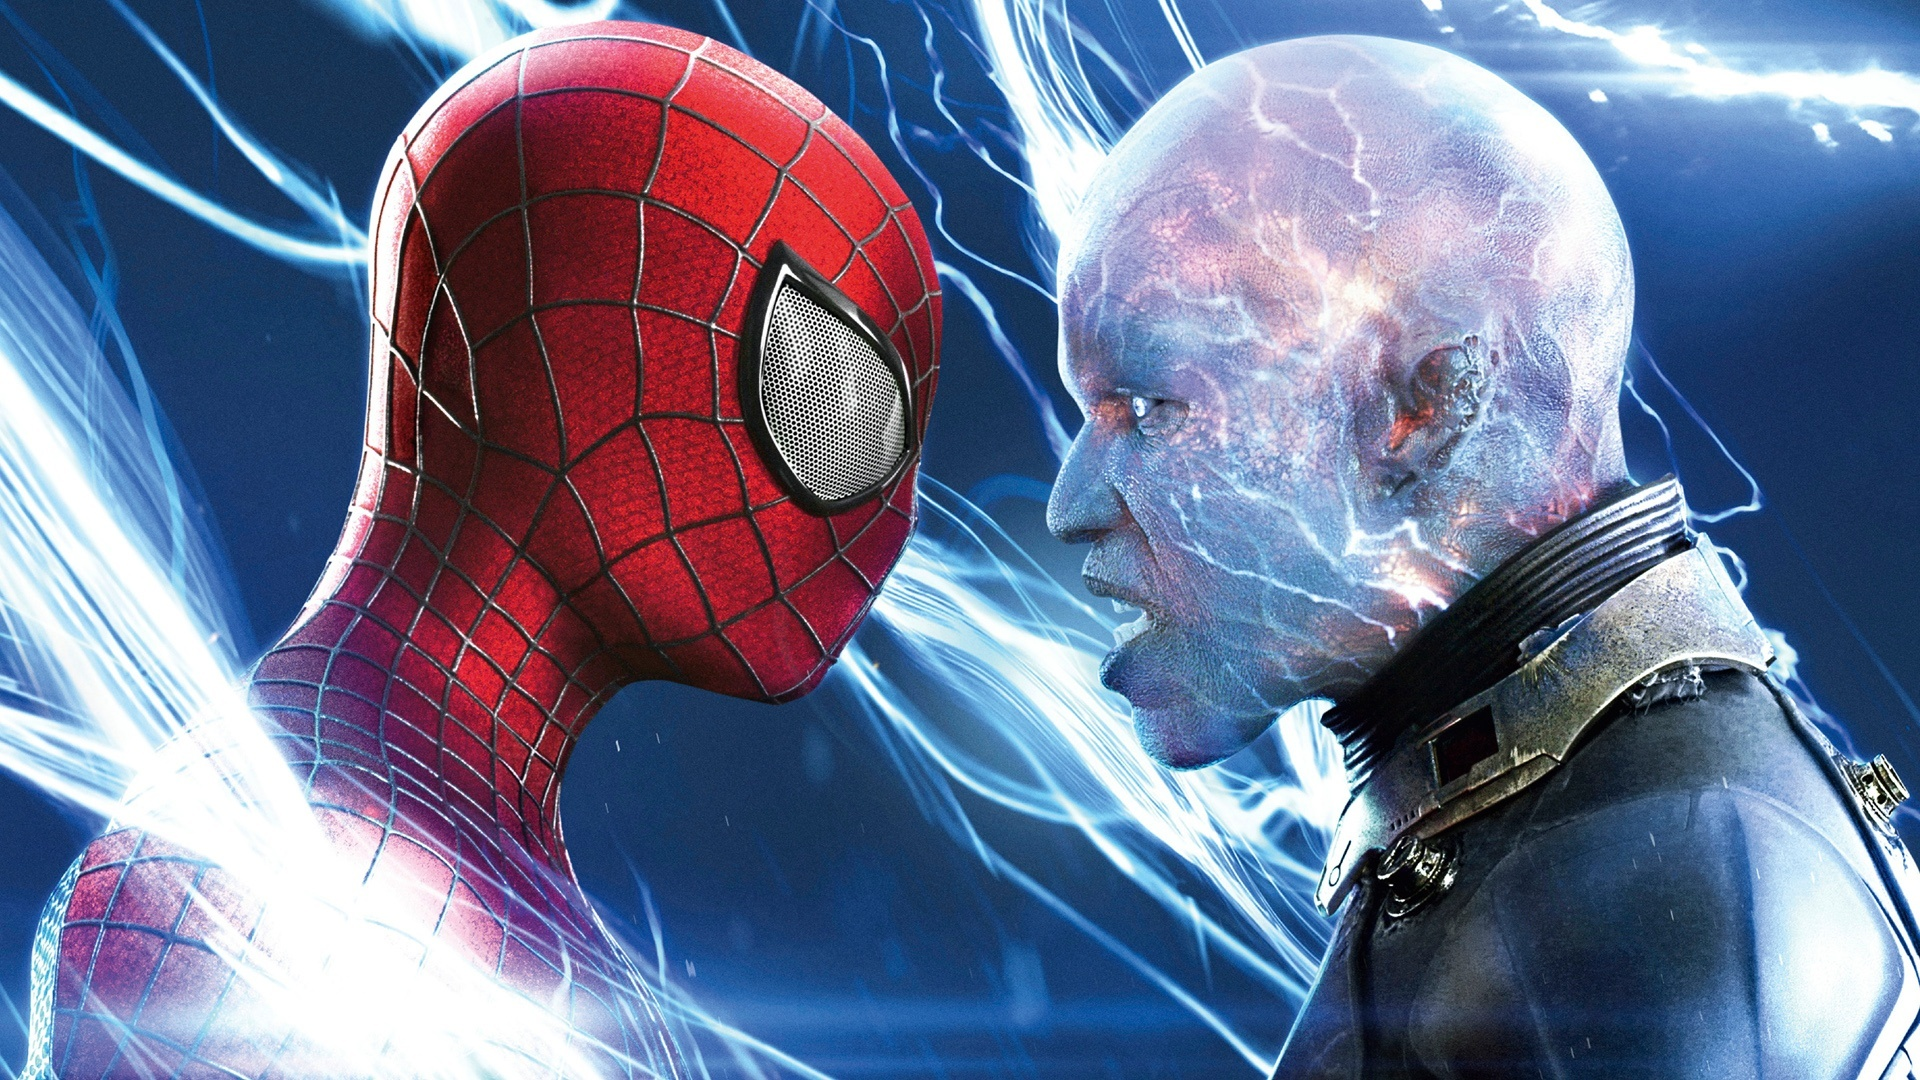 Spiderman-Electro-Max-Dillon-Hd-1920-x-1080-Need-iPhone-S-Plus-Backgrou-wallpaper-wpc5808931